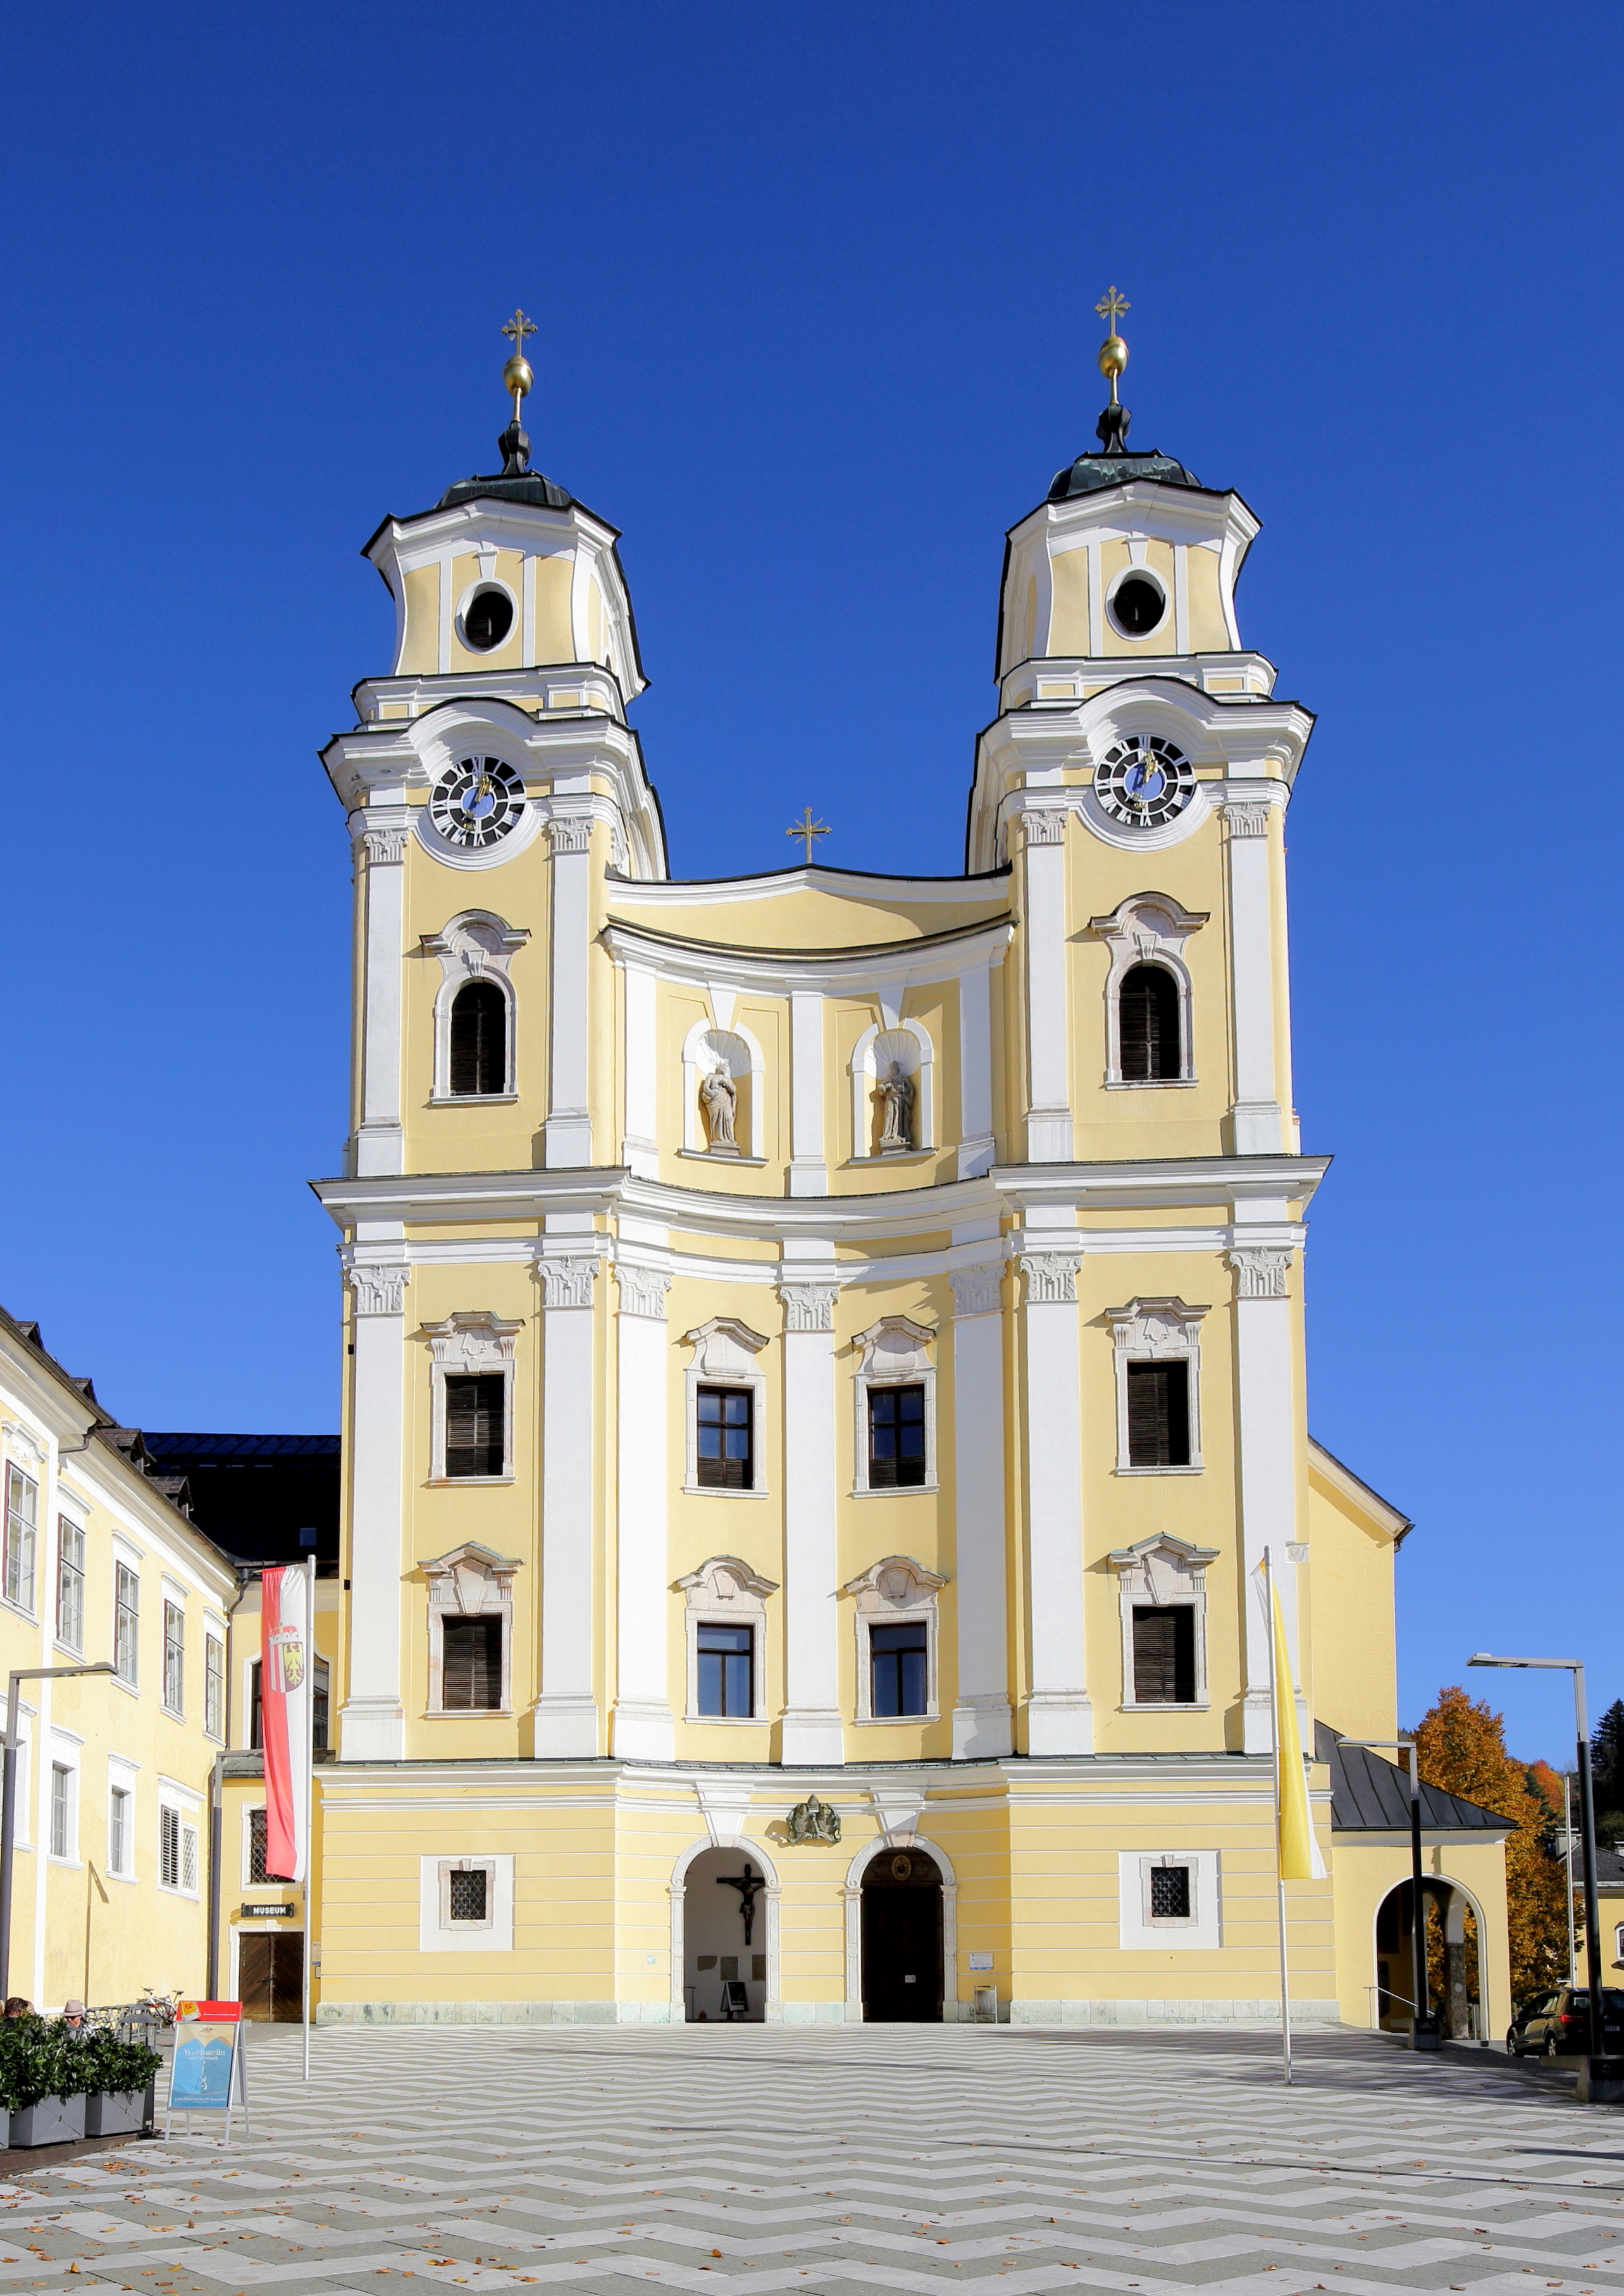 Image result for Church at Mondsee images Sound of music